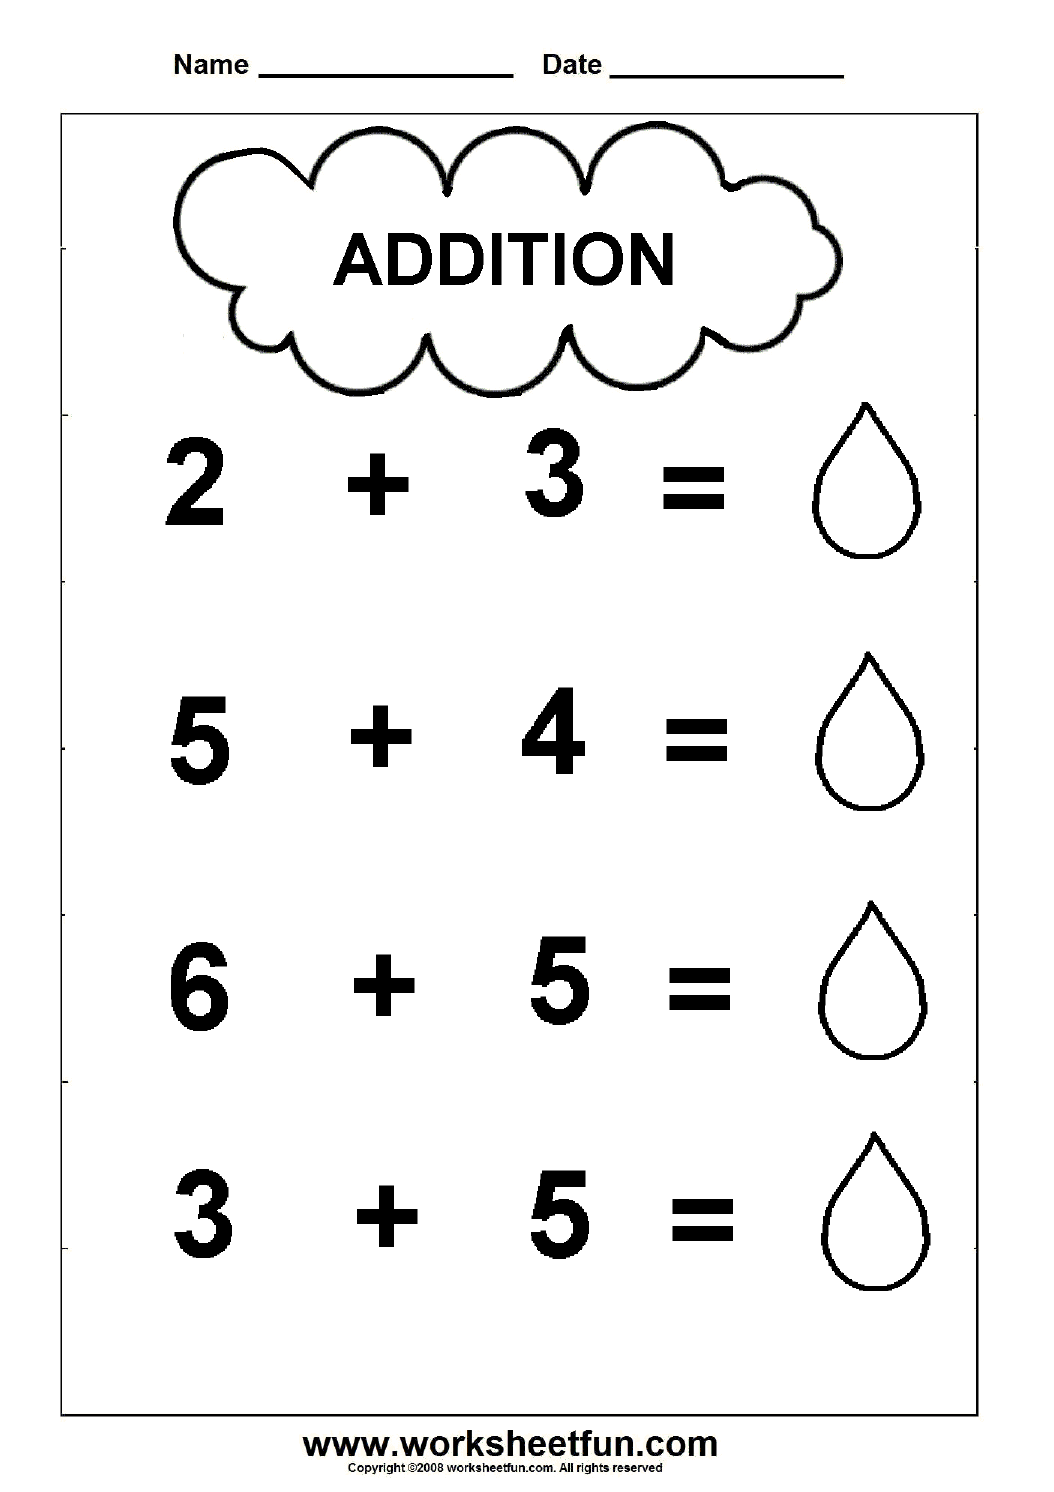 Printables Beginner Math Worksheets beginner math worksheets hypeelite 1000 images about free printable on pinterest fact math